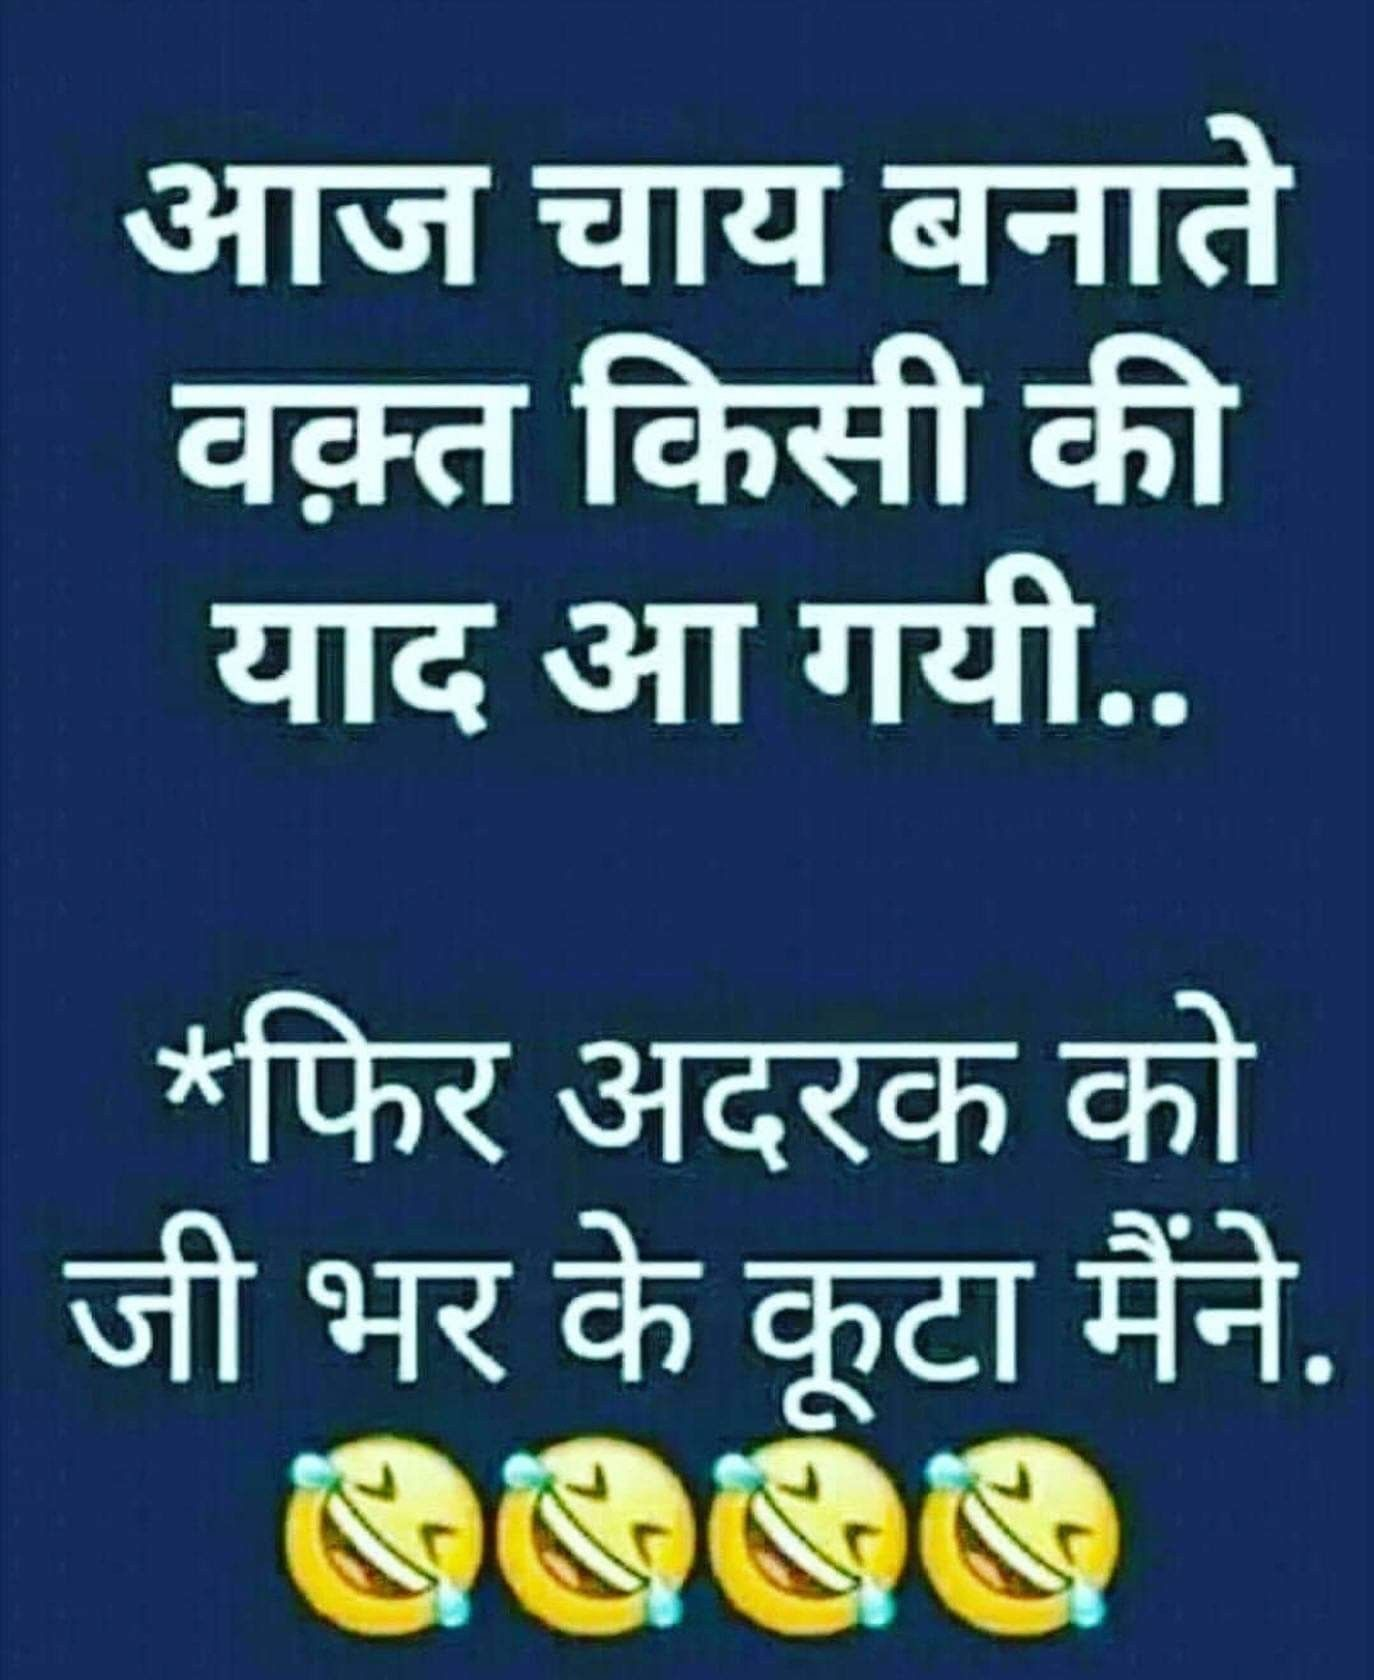 Pin By Prem Vikal On Joks Funny Messages Funny Jokes In Hindi Funny Quotes